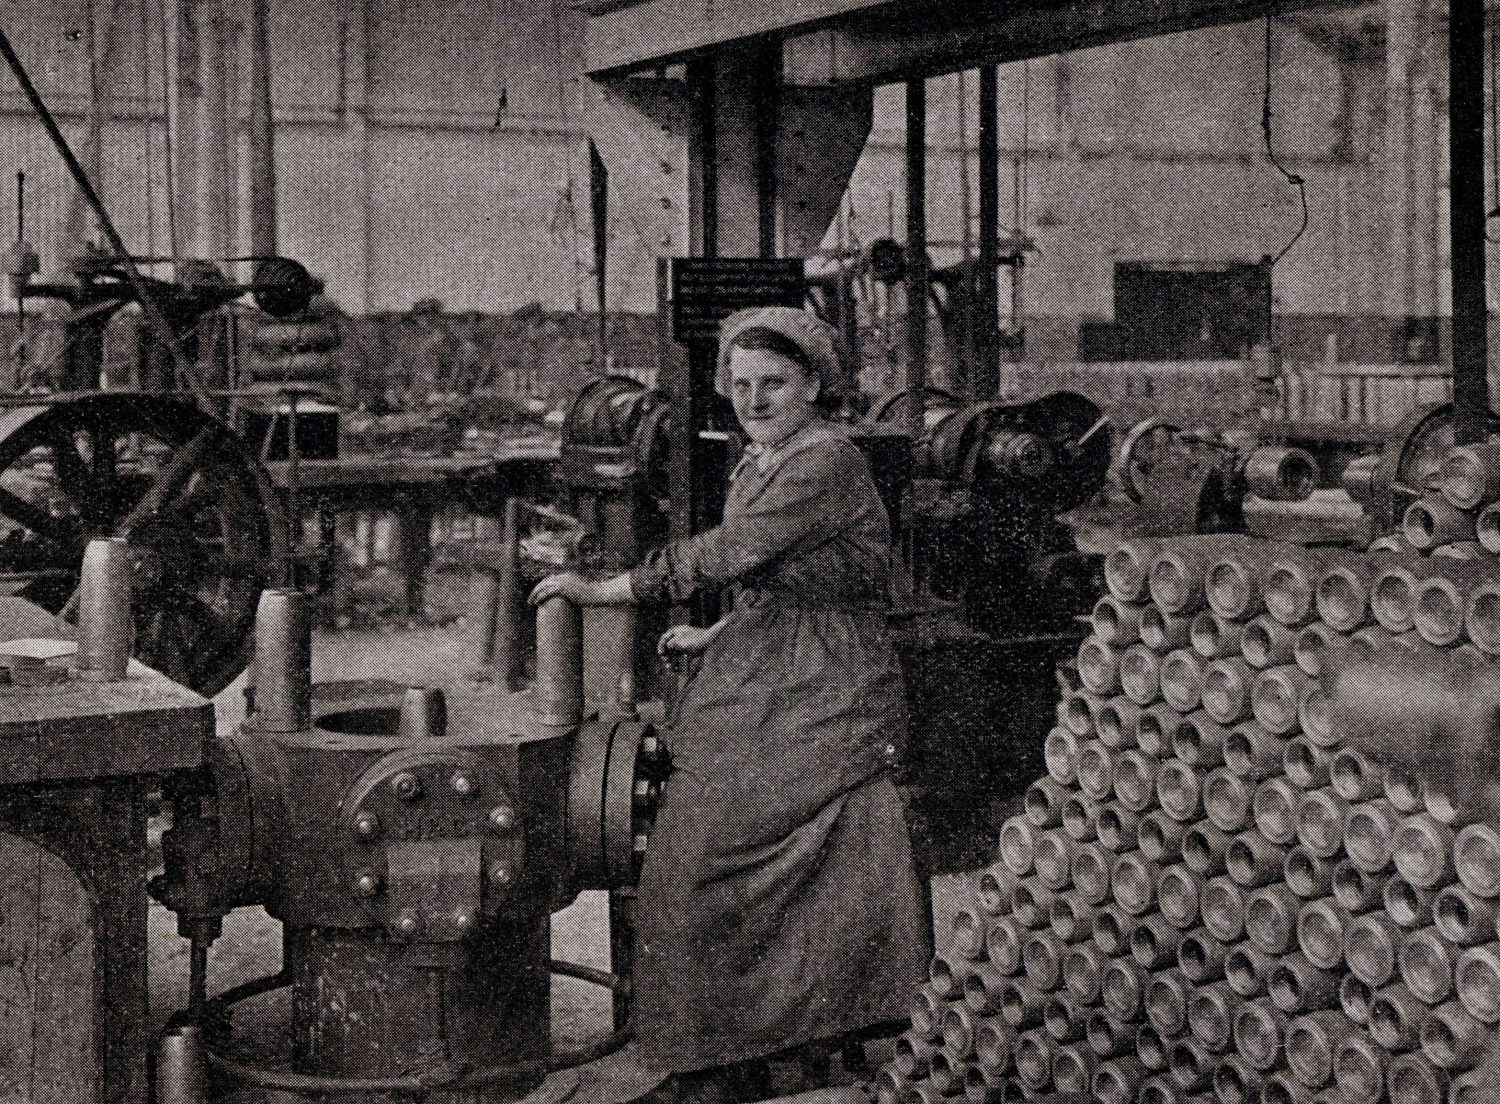 A woman poses with a shell cartage machine at North Road Locomotive works which was turned into a munitions factory in the first world war